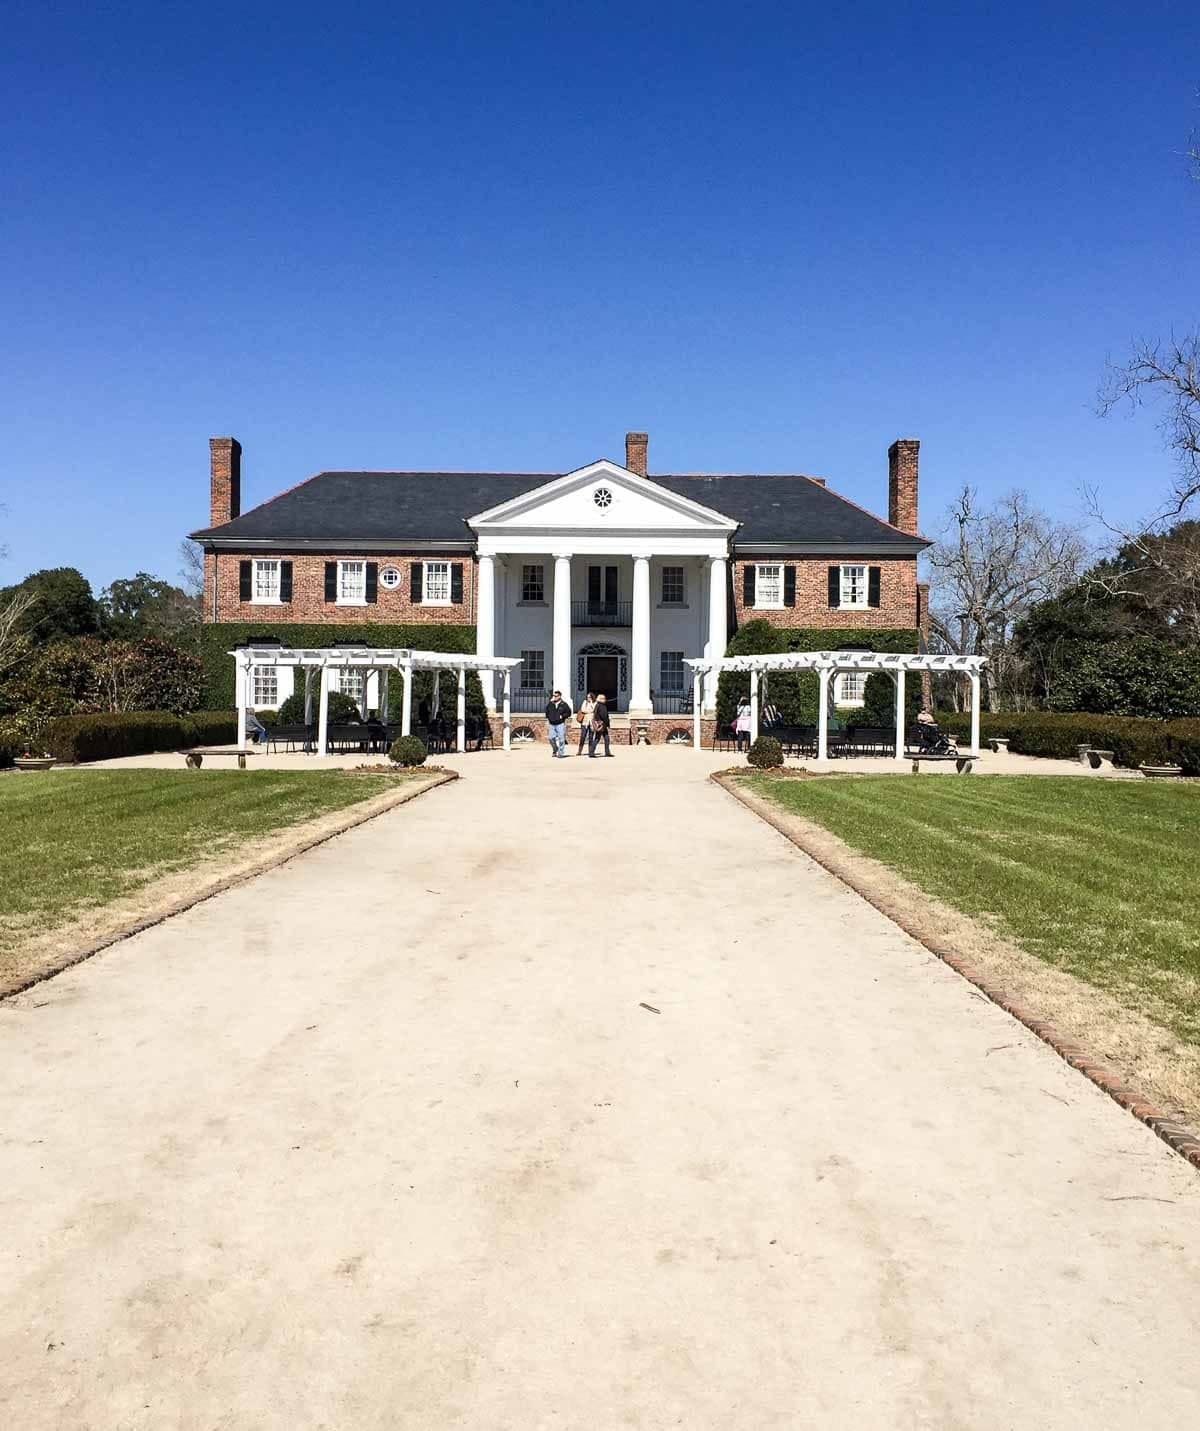 Things to Do in Charleston: Tour Boone Hall Plantation